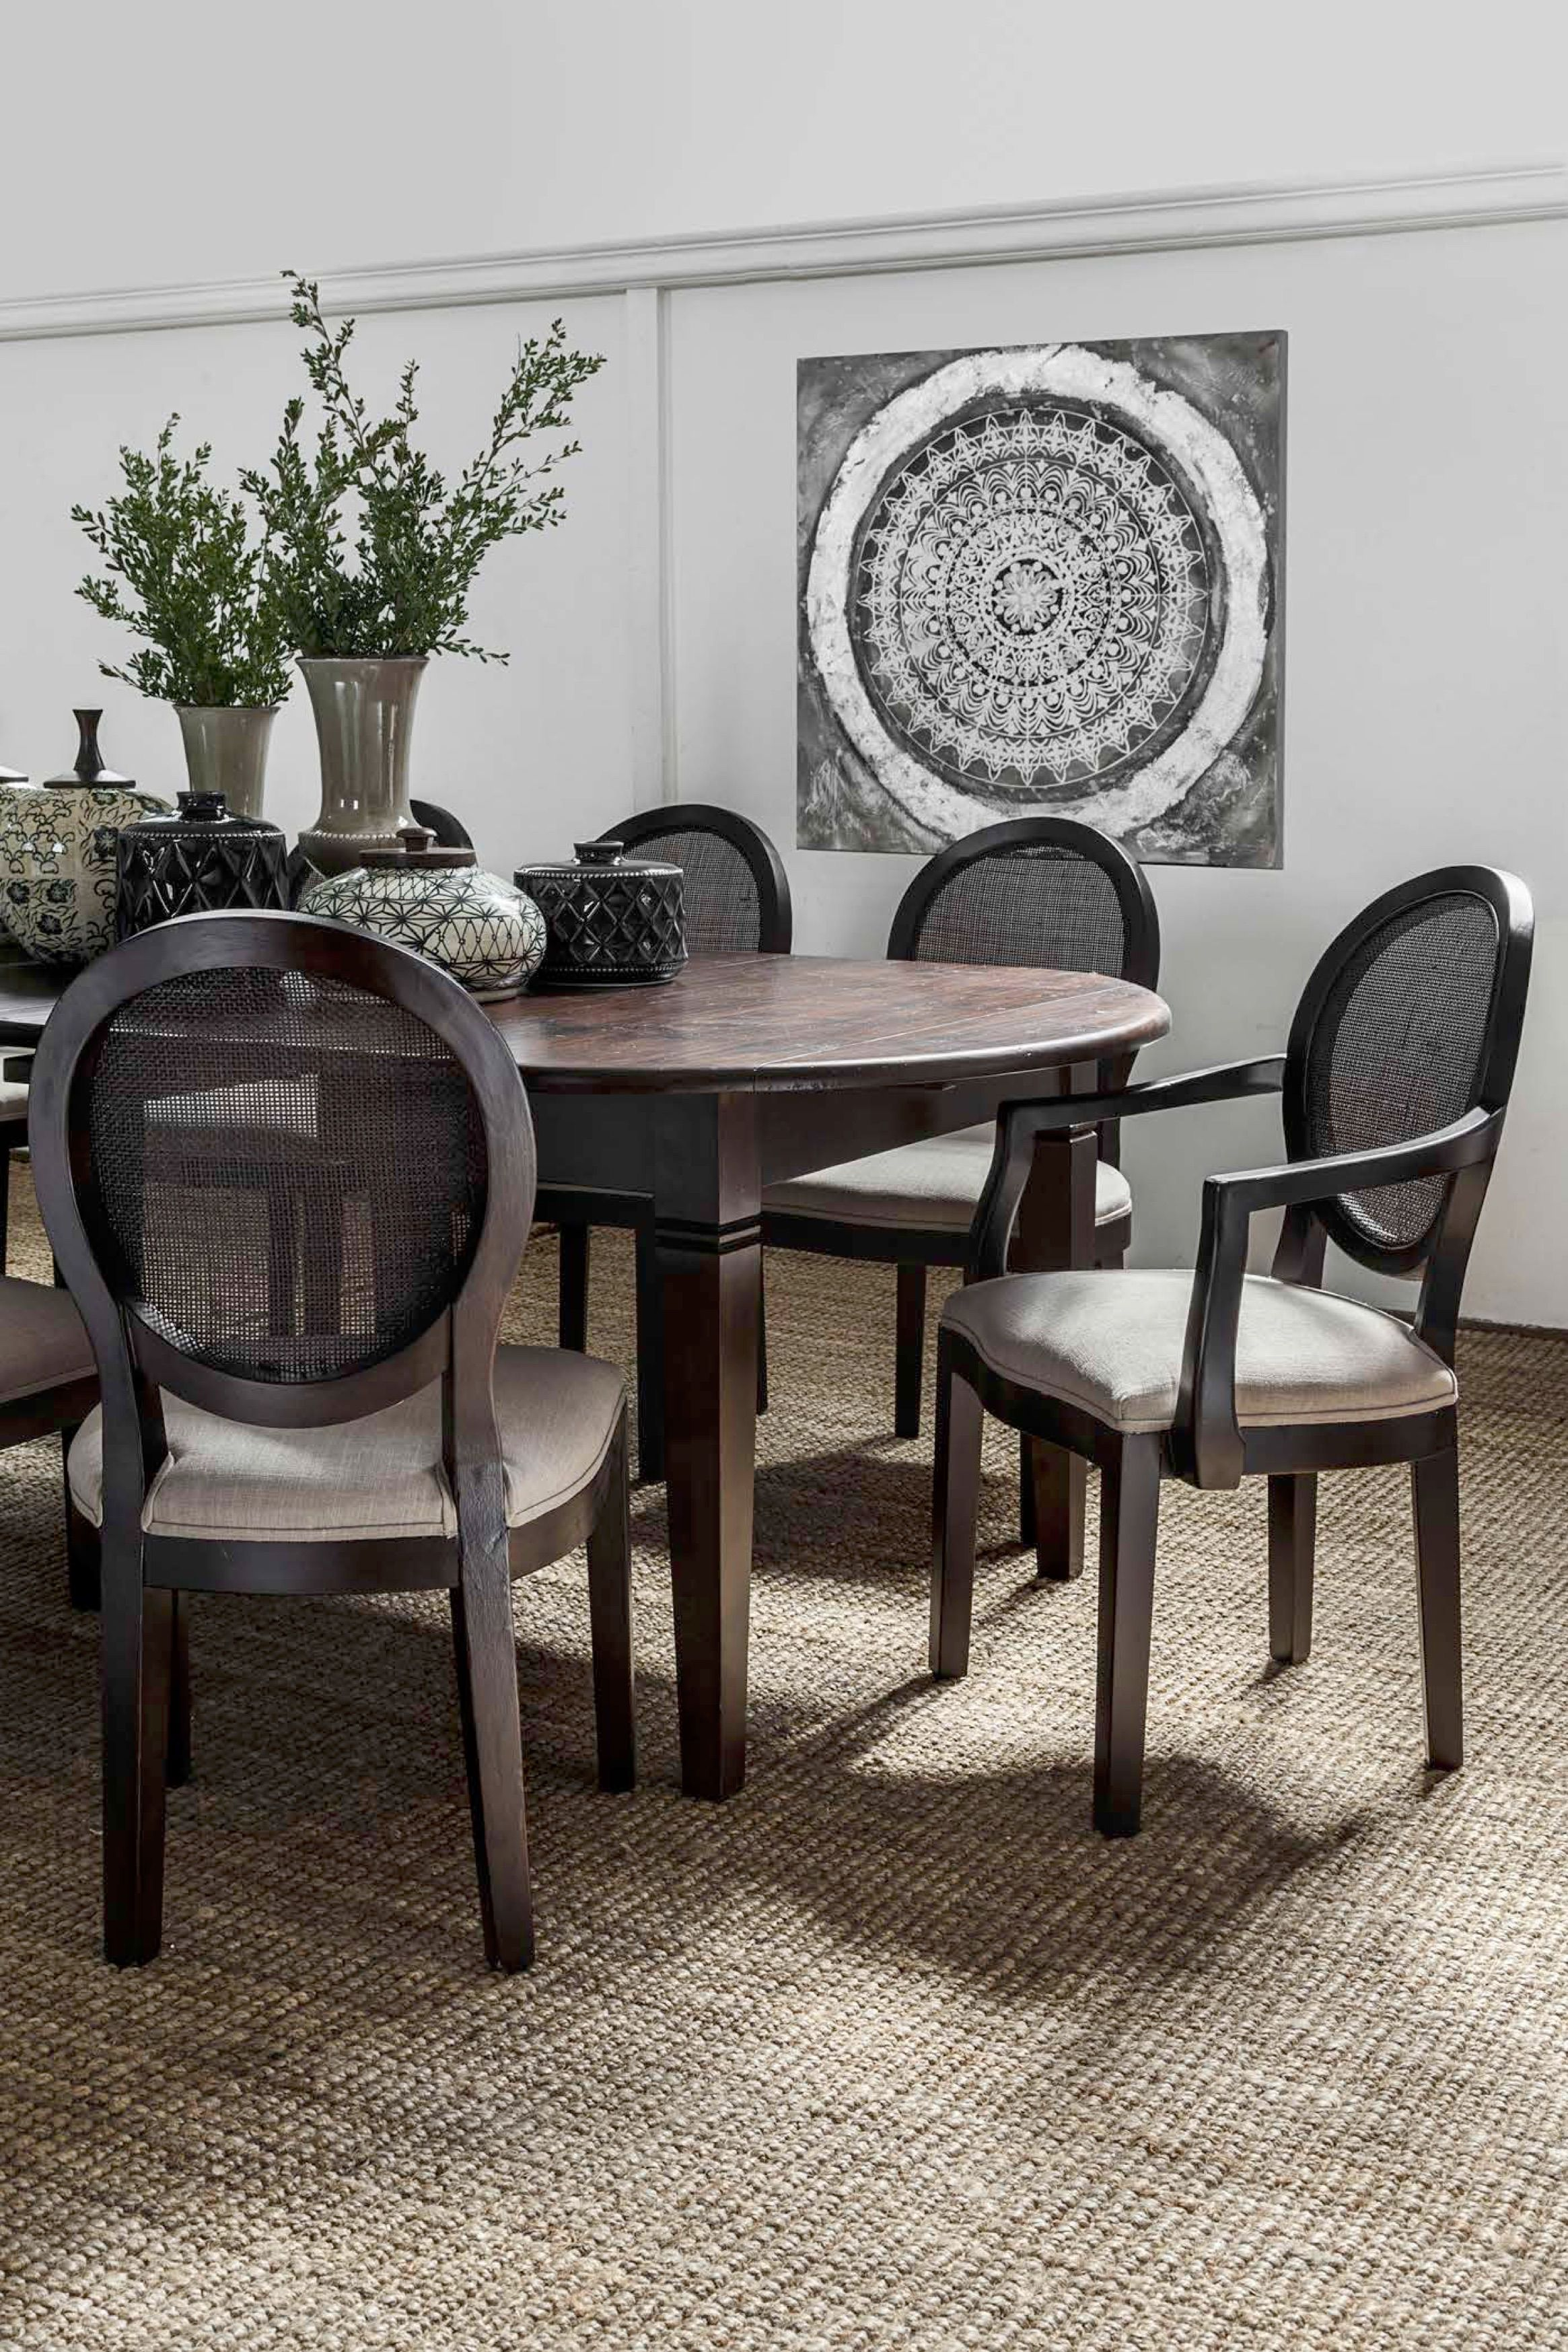 Pin By Coricraft On The Dining Room Dining Table Dining Dining Room Furniture